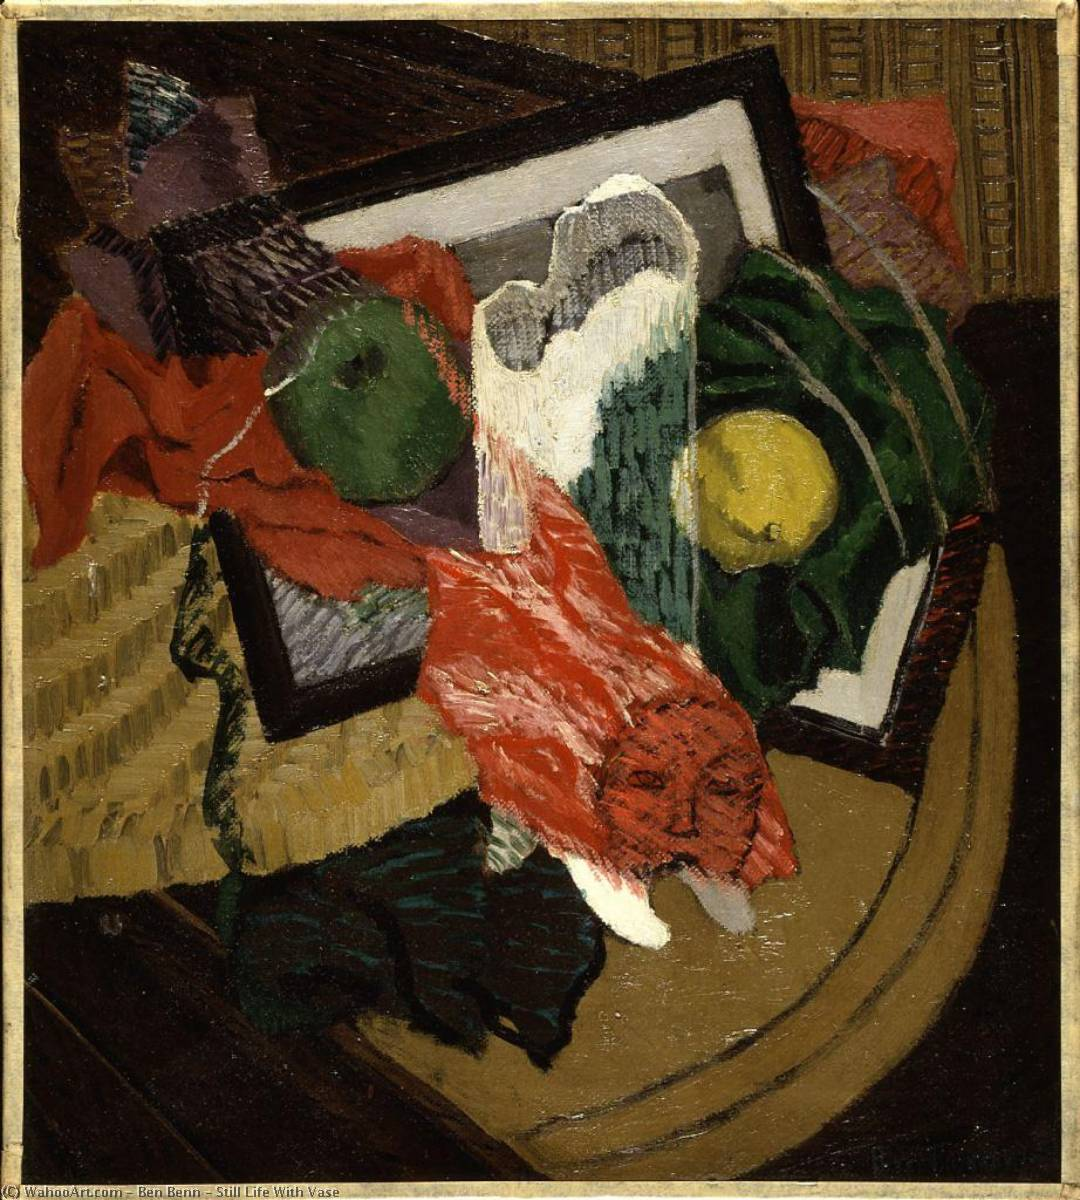 Still Life With Vase, Oil On Canvas by Ben Benn (1905-1989)